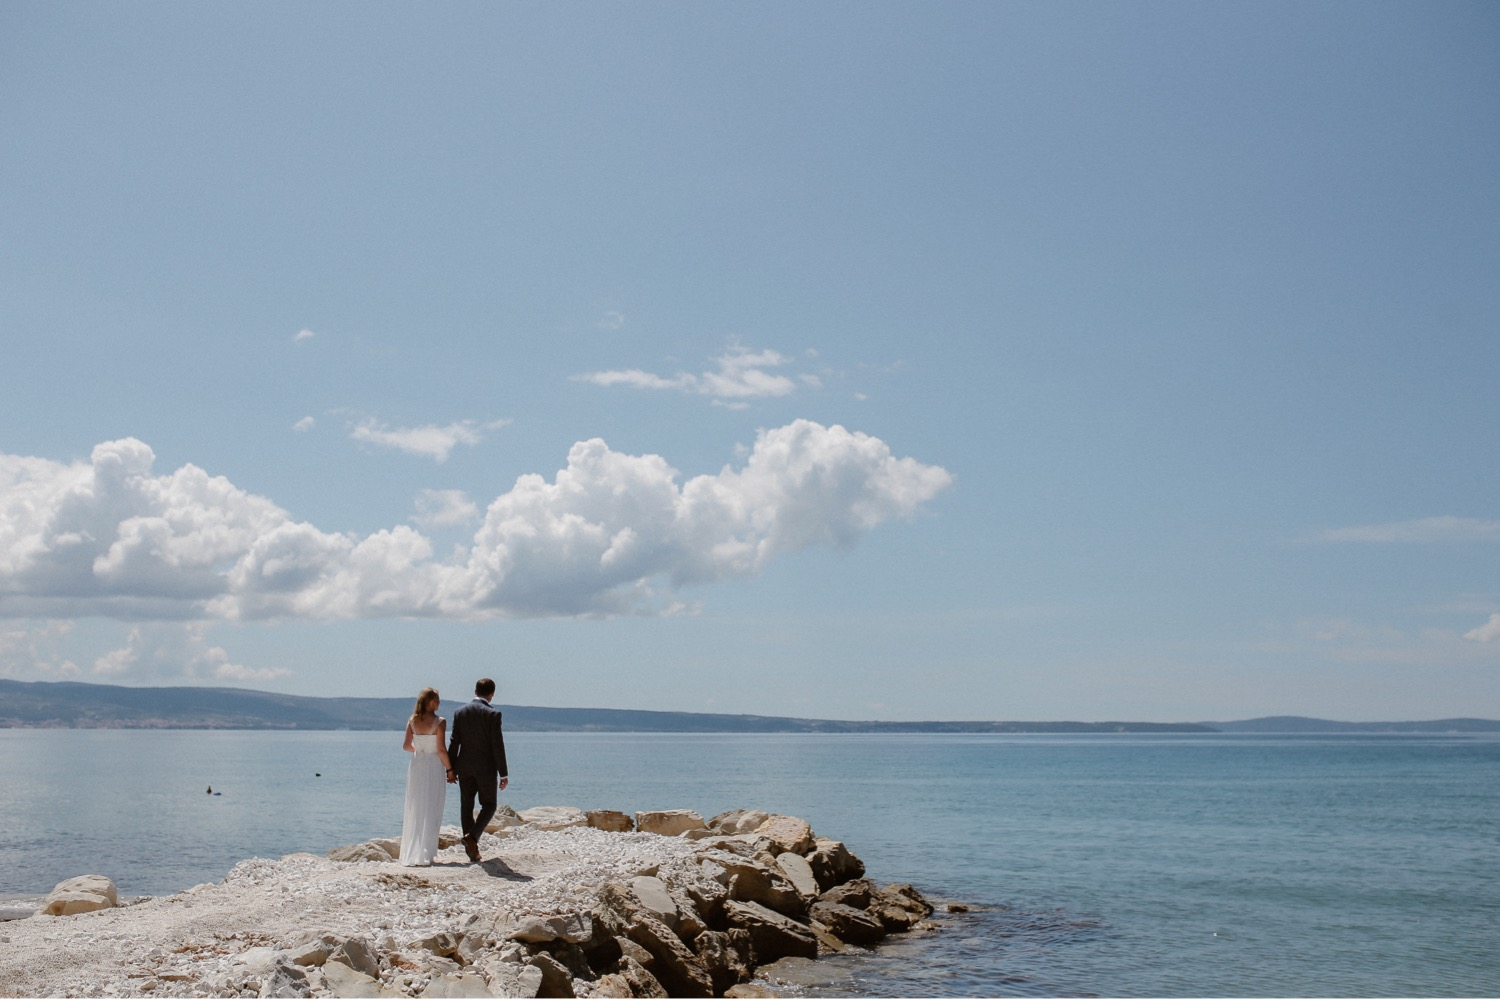 Croatia beach elopement hilke thomas love and ventures photography 01 | Croatia Elopement Photographer and Videographer